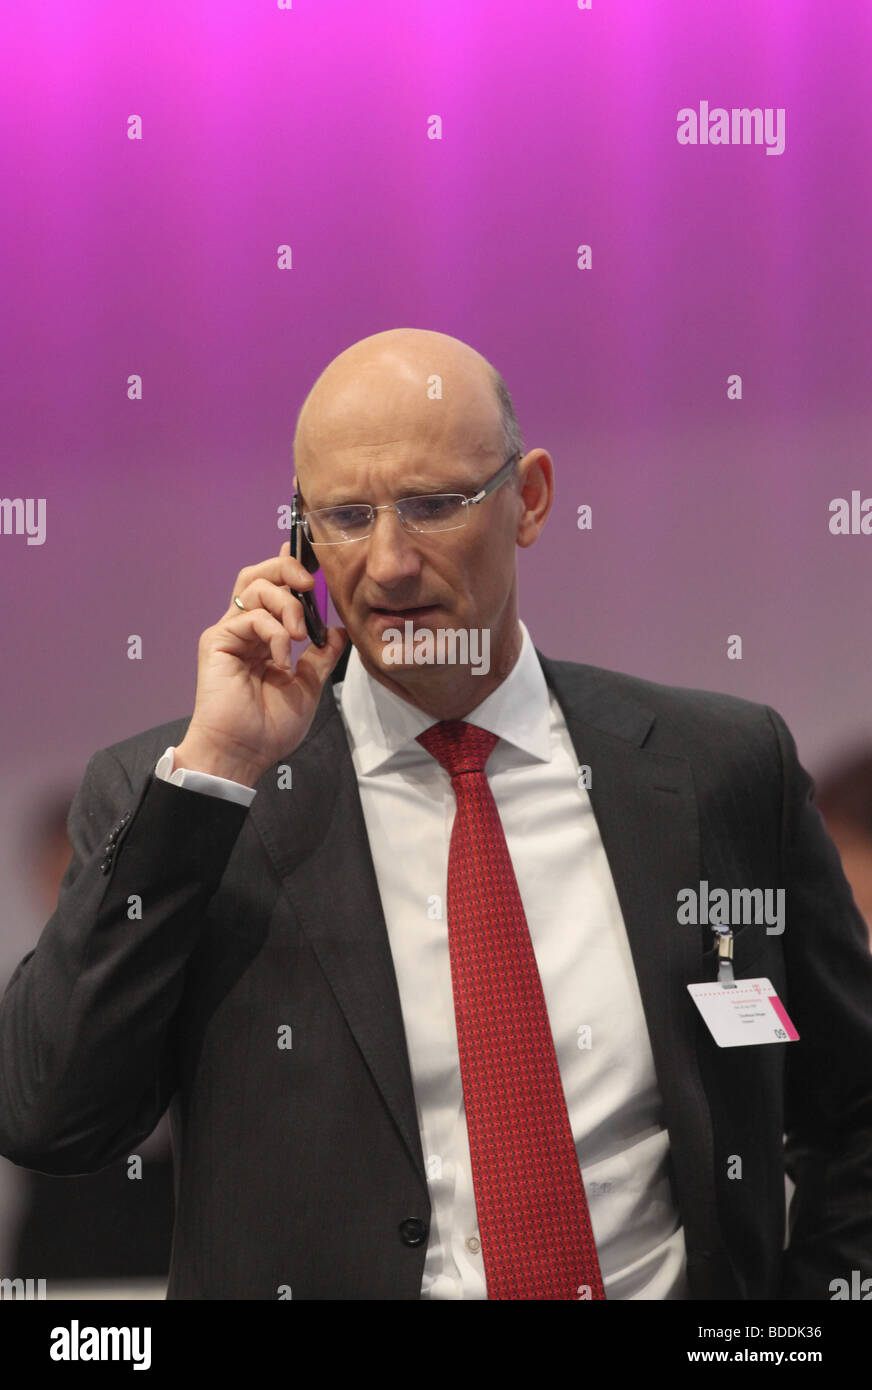 Deutsche Telekom board member Timotheus Hoettges talking on a mobile phone, annual shareholders meeting, Cologne. Stock Photo